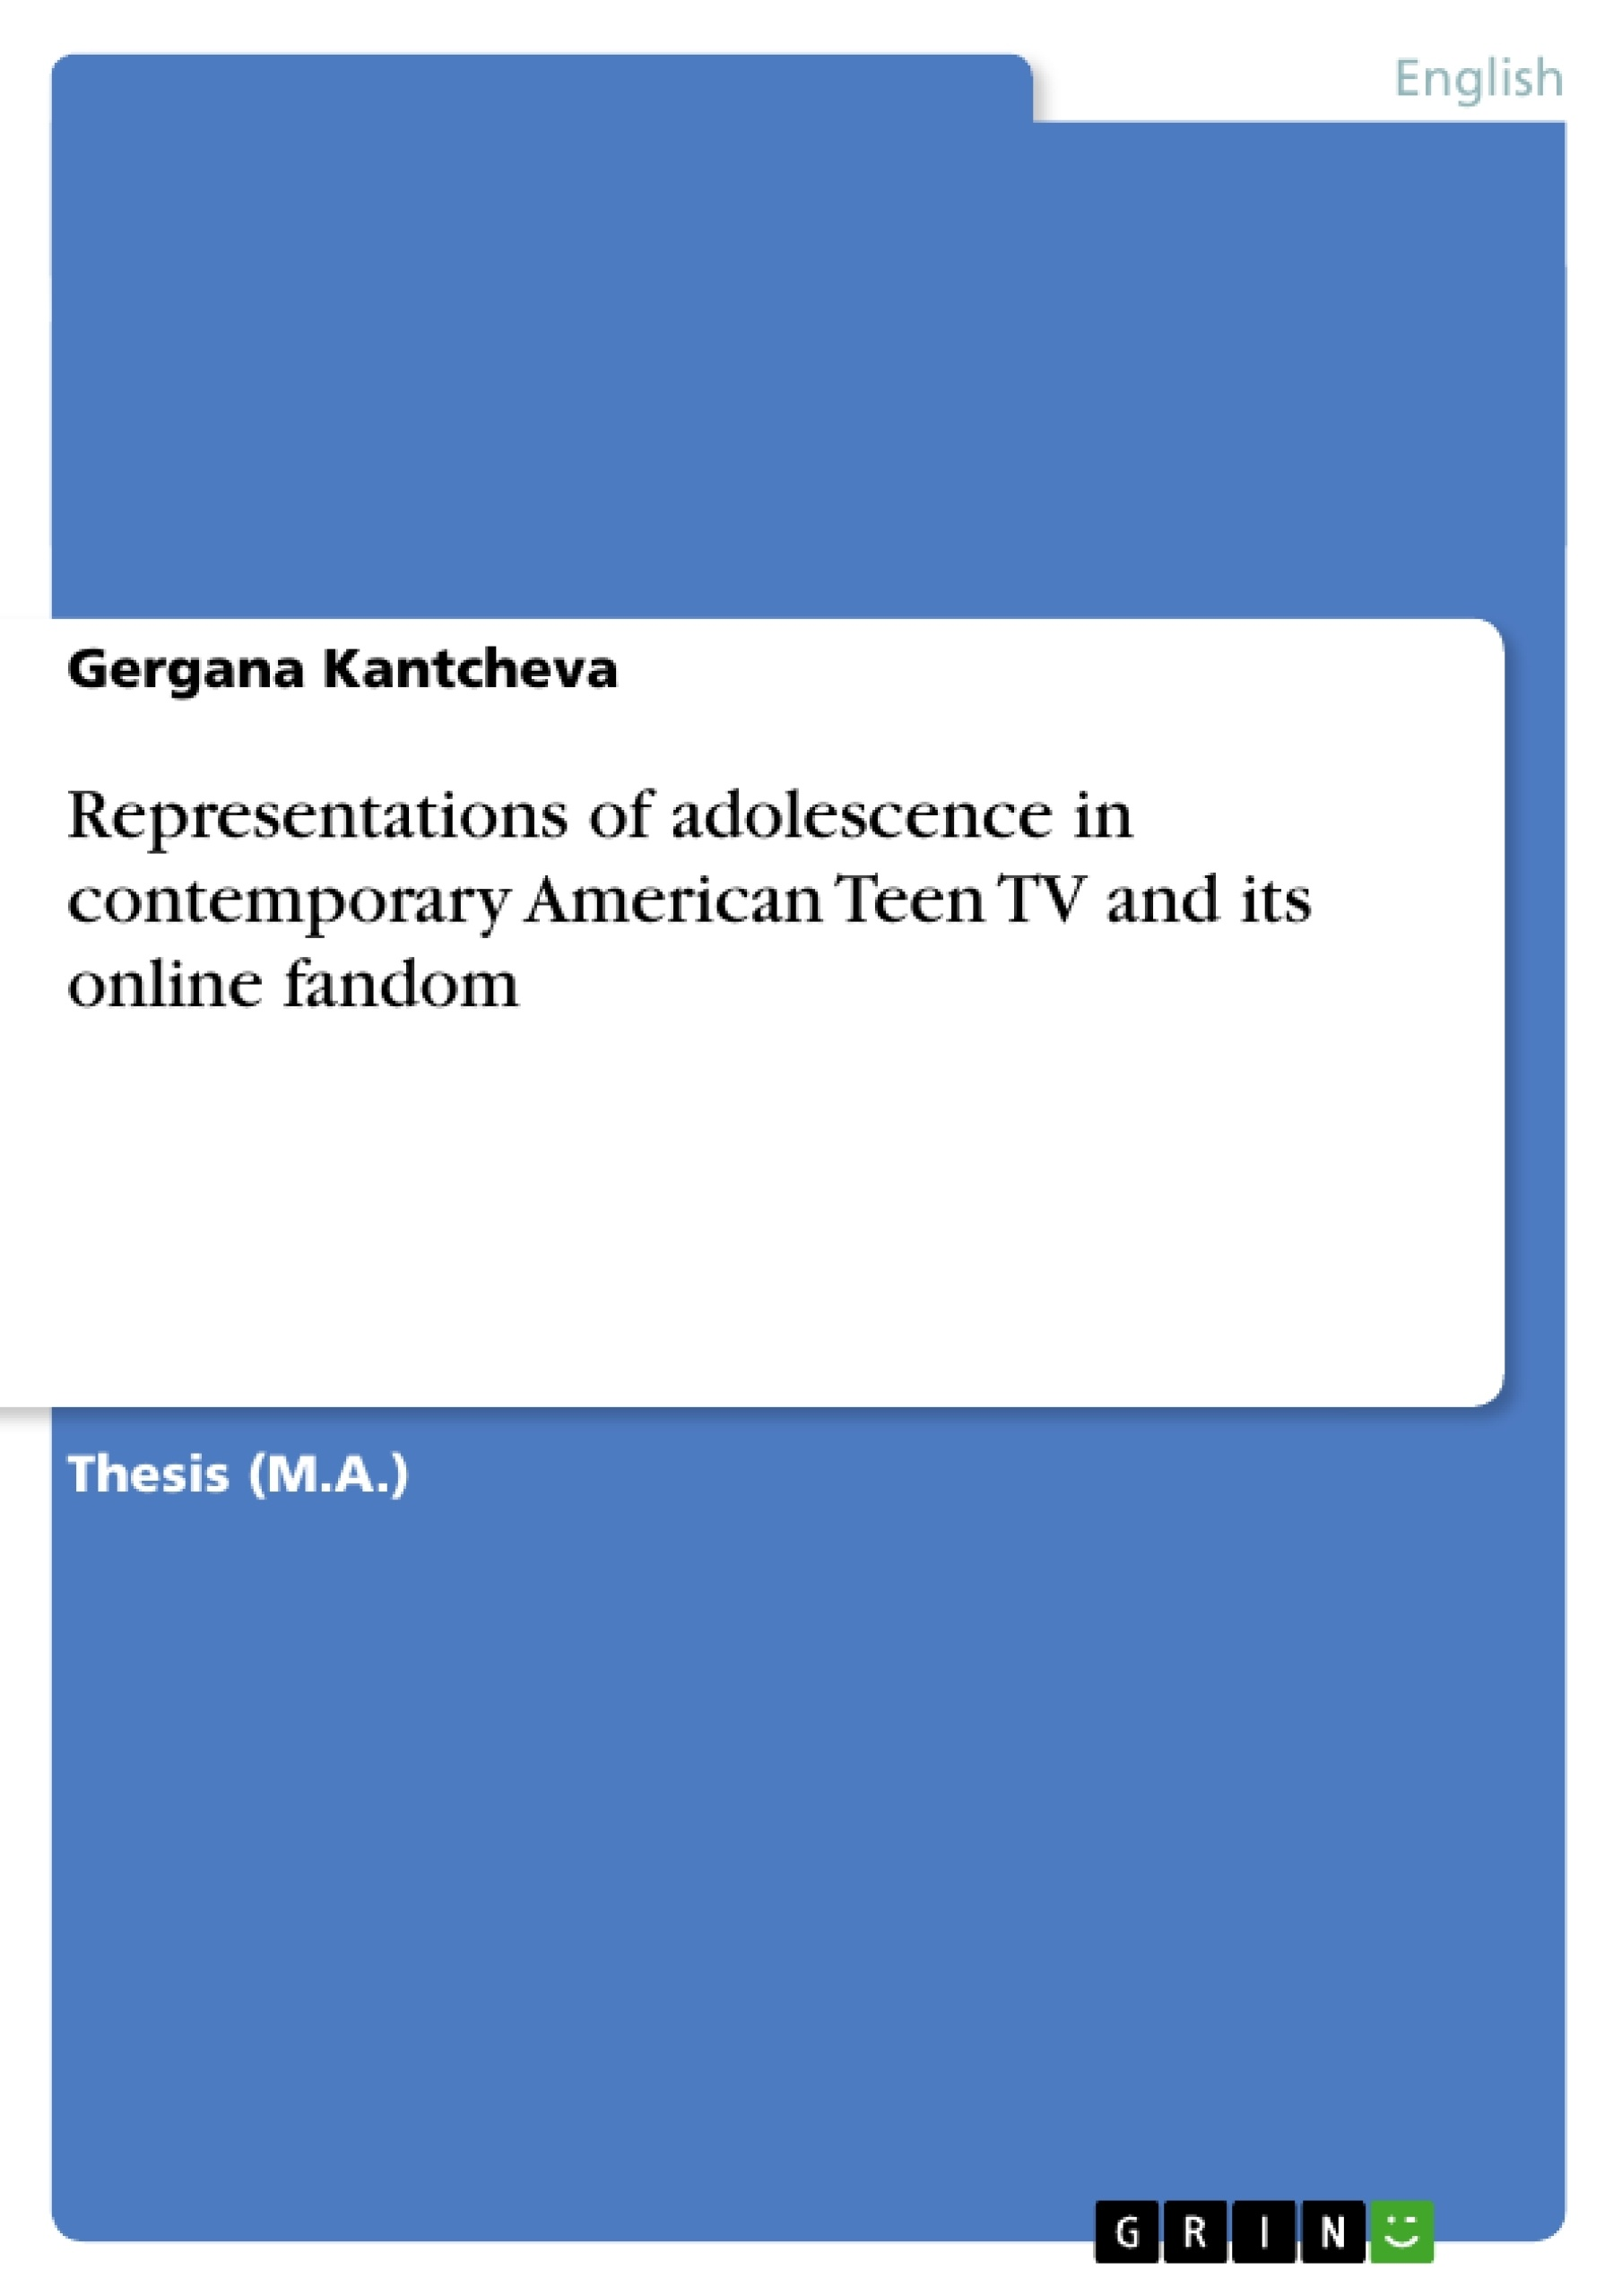 Title: Representations of adolescence in contemporary American Teen TV and its online fandom